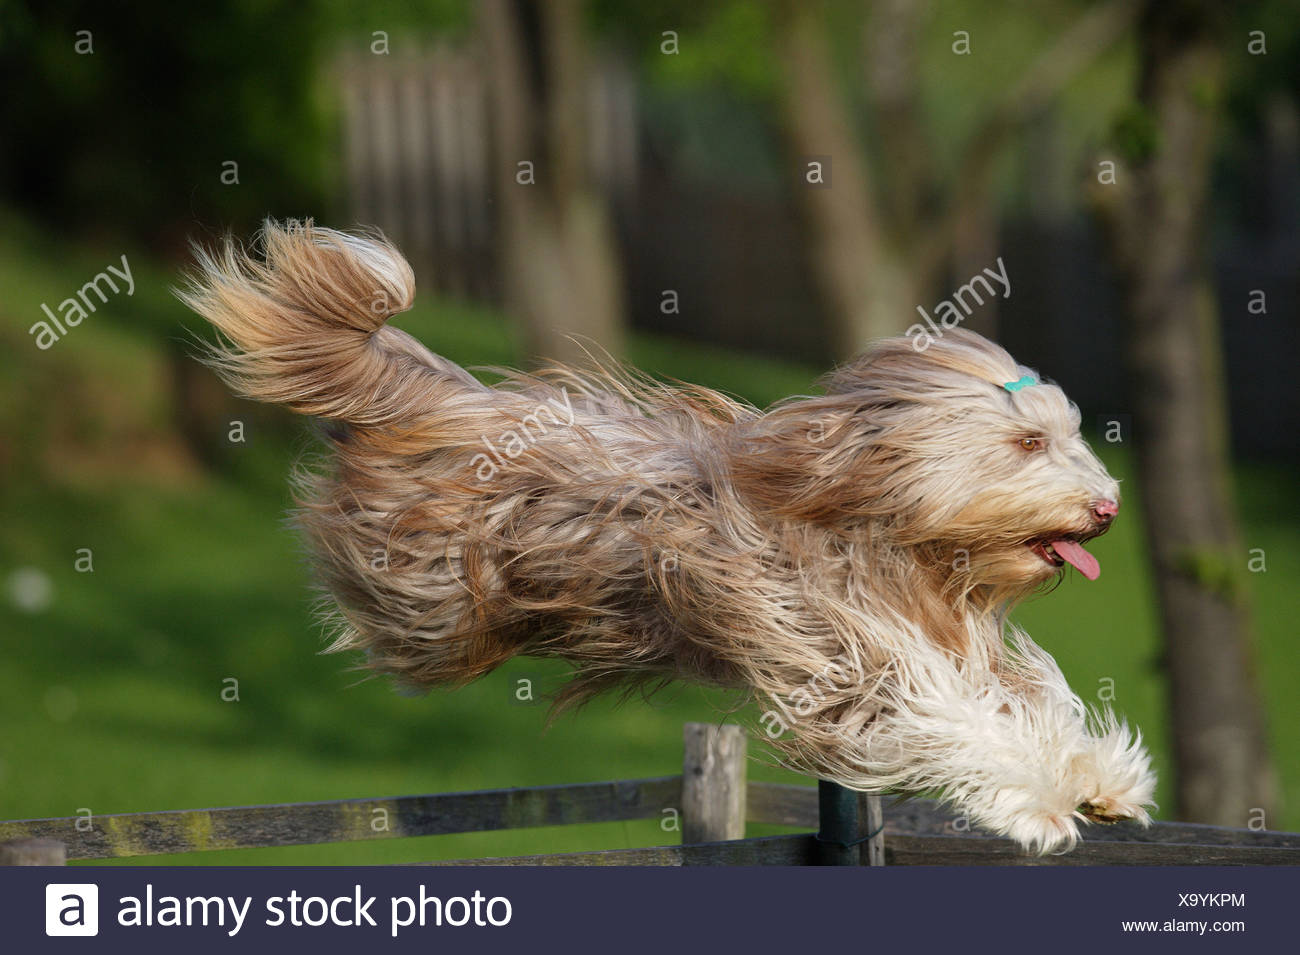 Bearded Collie - jumping - Stock Image